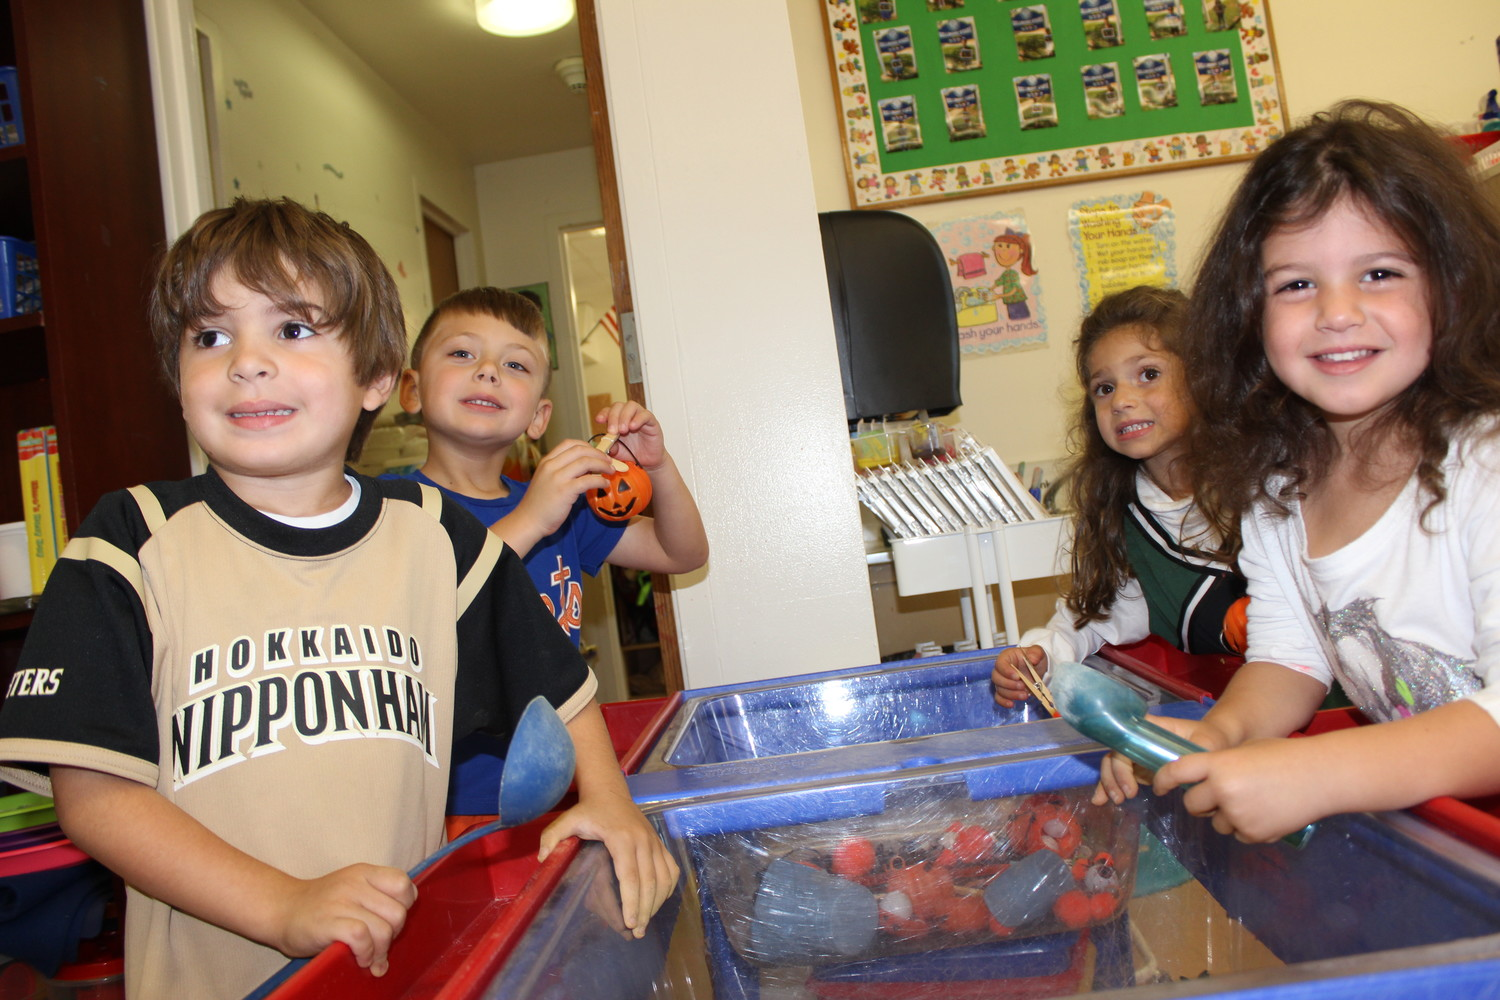 Right: Pre-kindergarten students engaged in a sensory activity to strengthen their fingers and teach them the motor skills necessary for writing.